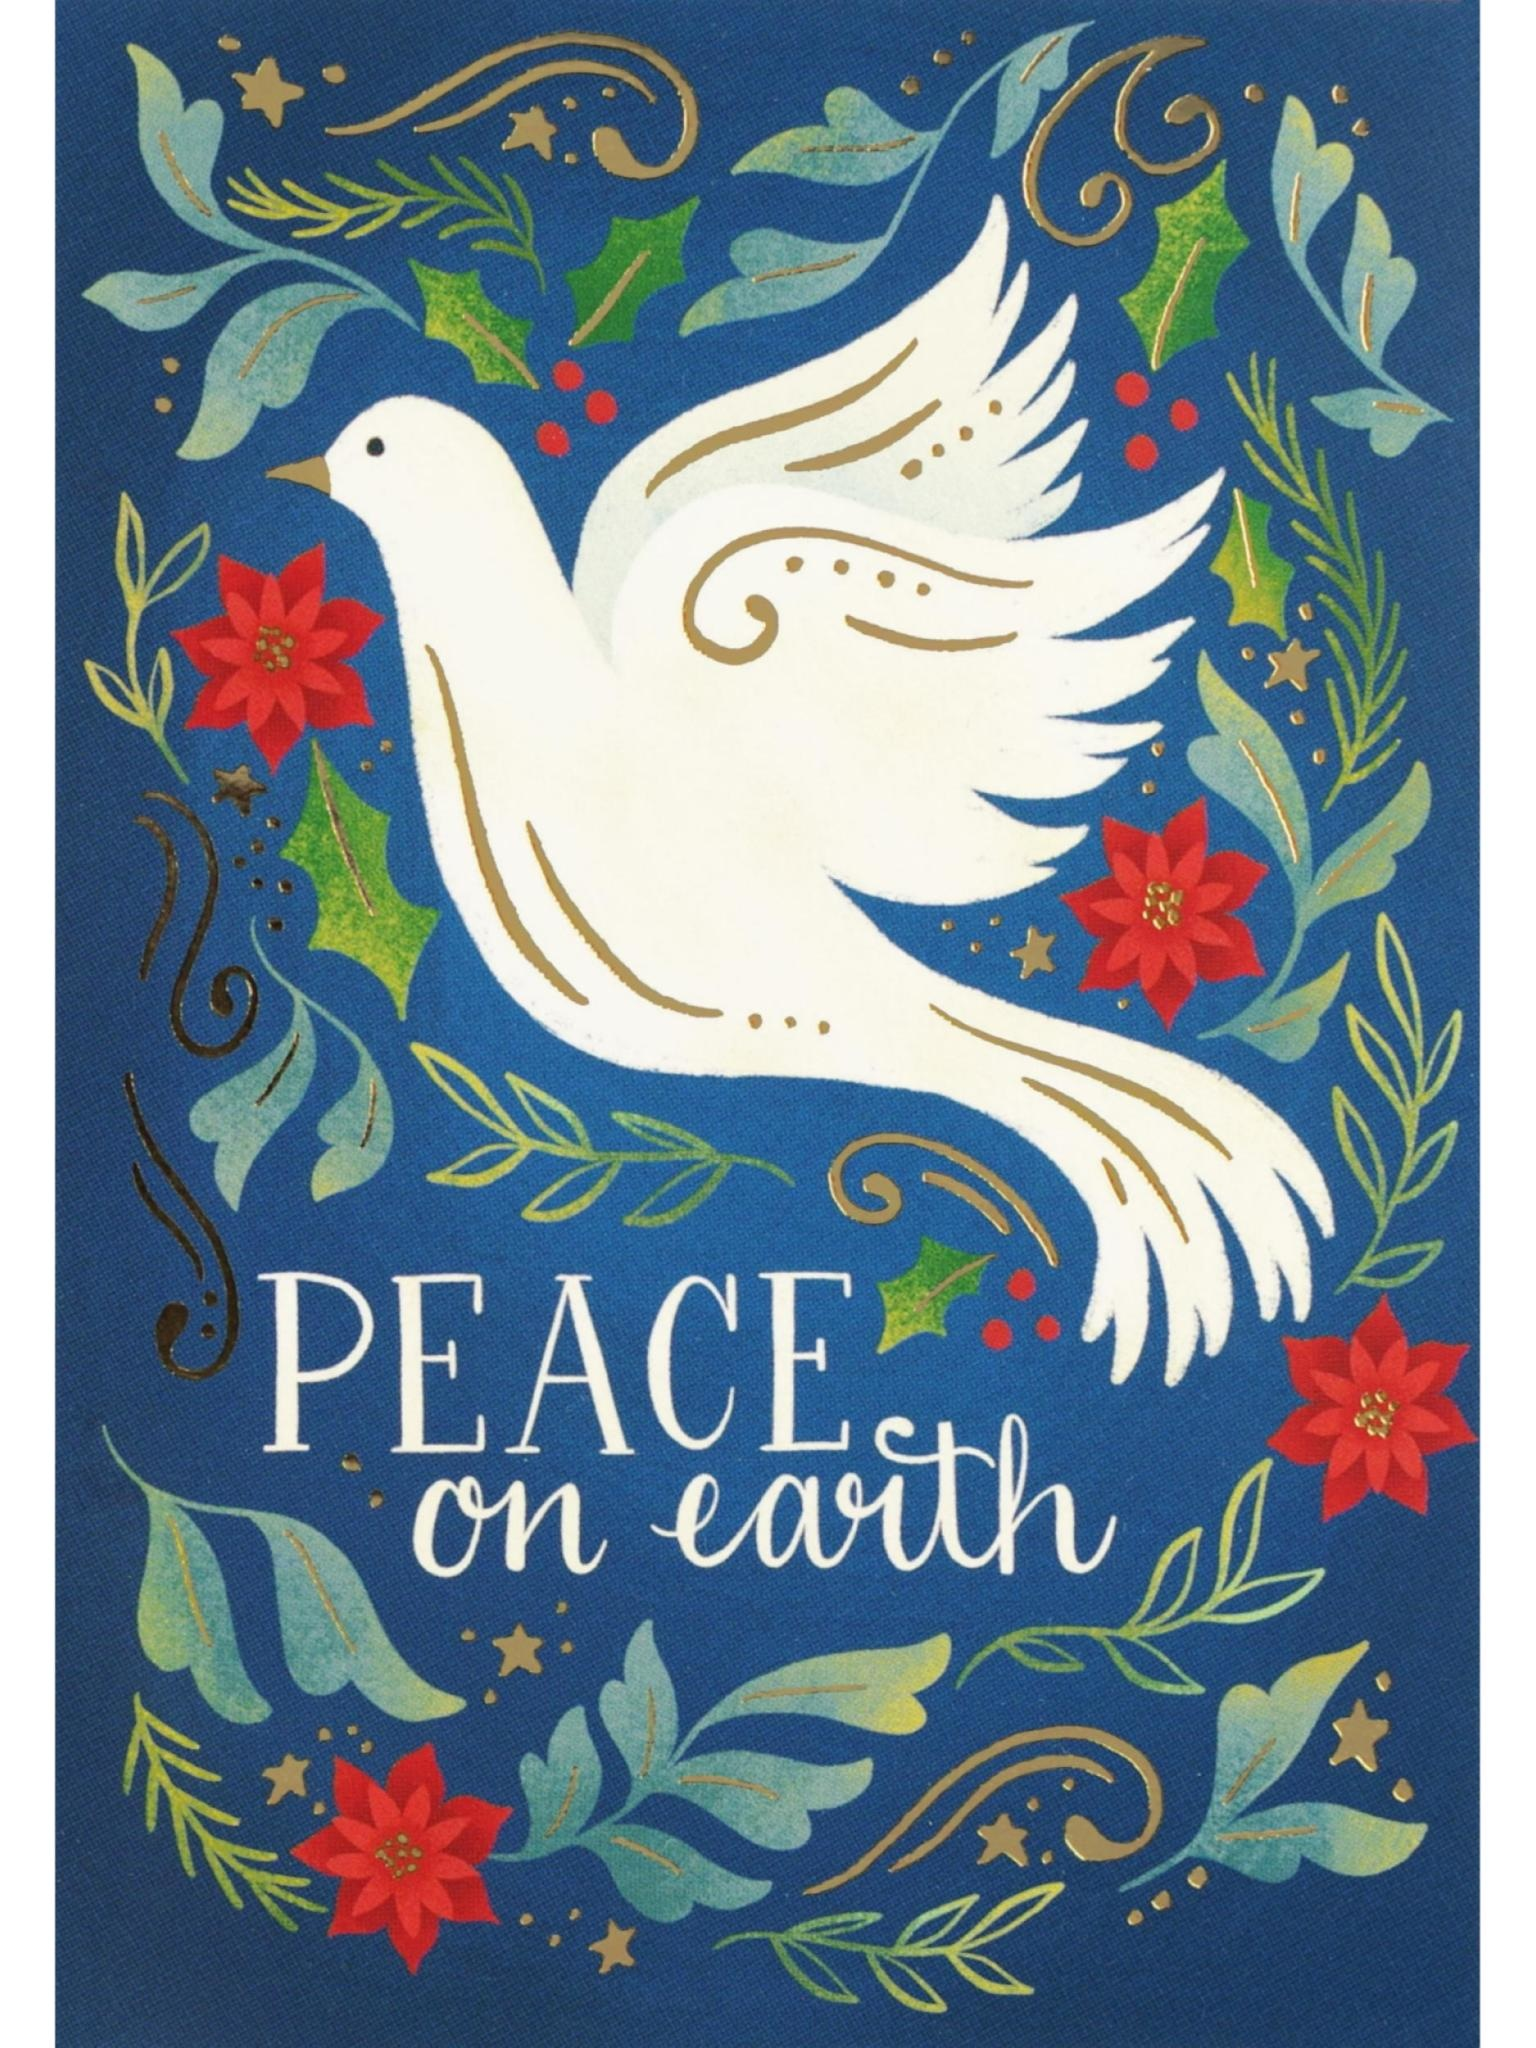 Peter Pauper Spirit of Peace Boxed Holiday Cards